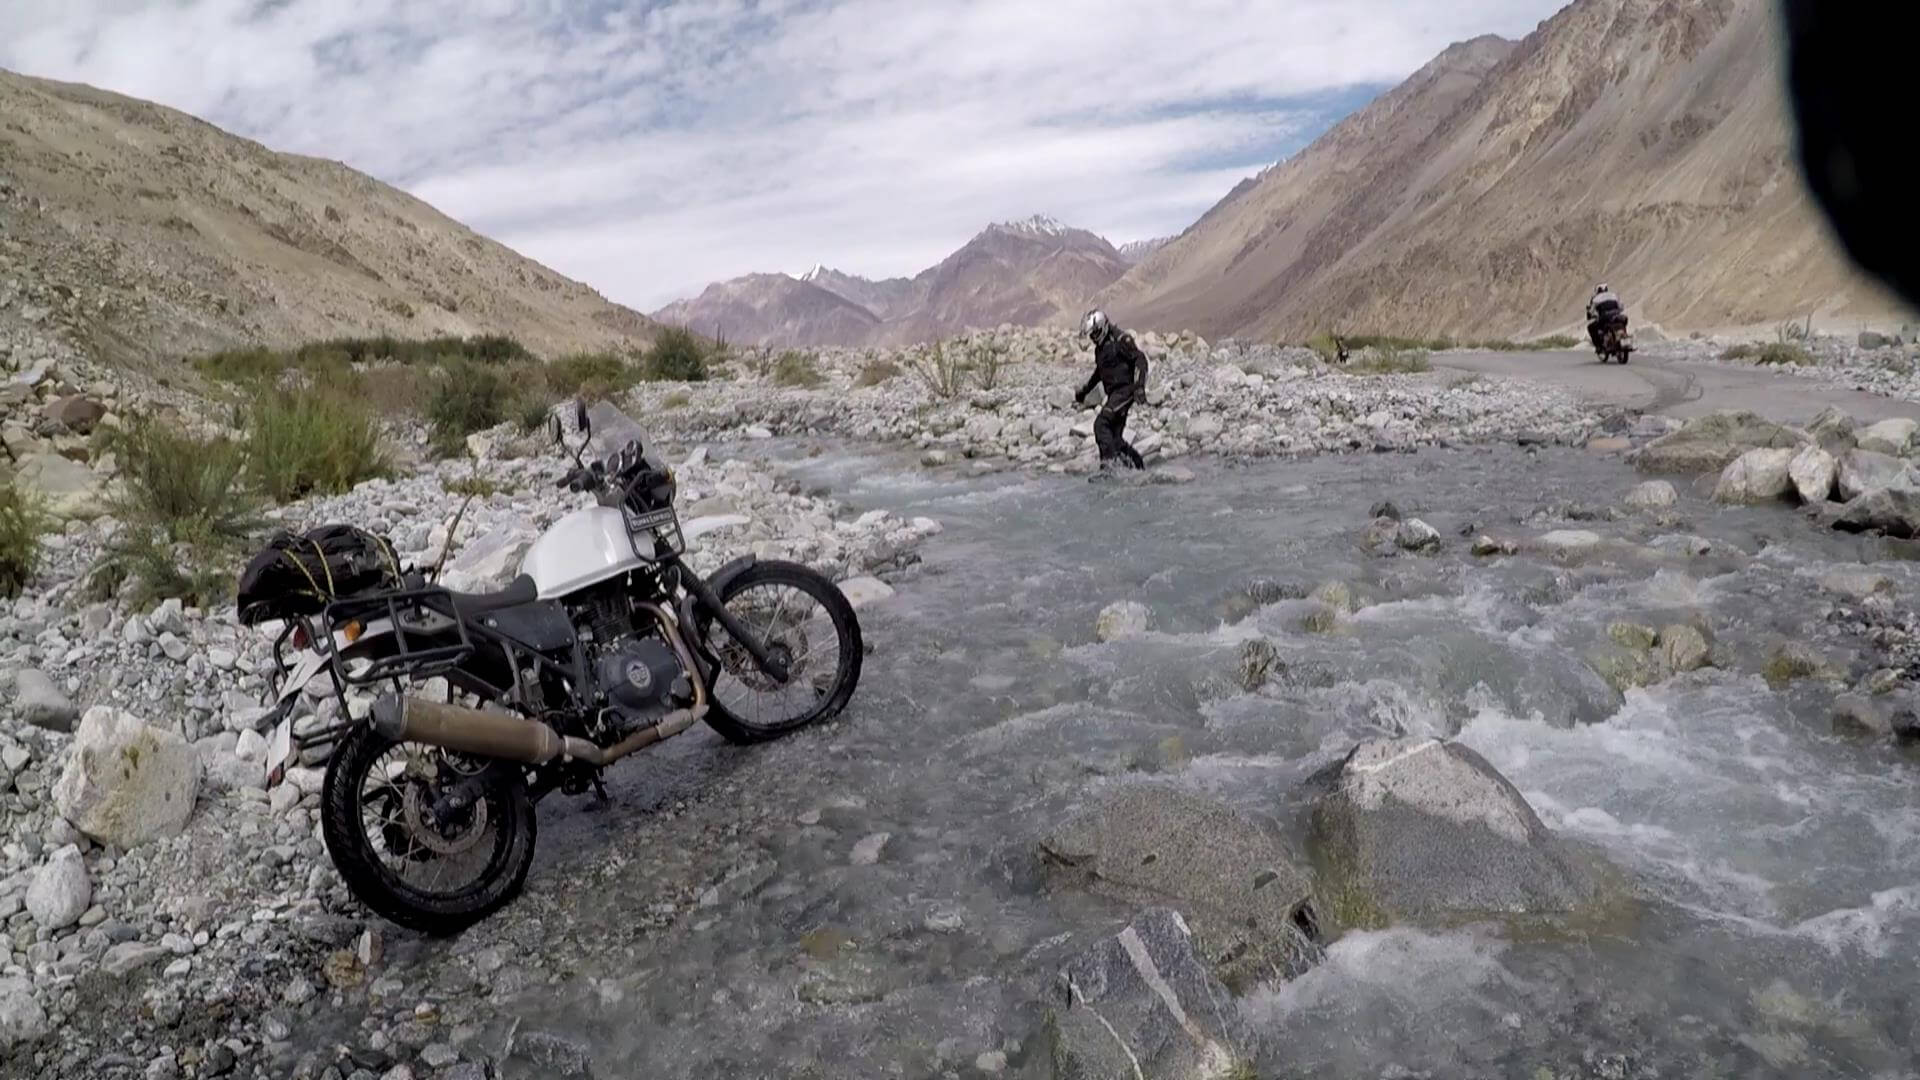 Adventure Motorcycle Tour in Himalayas